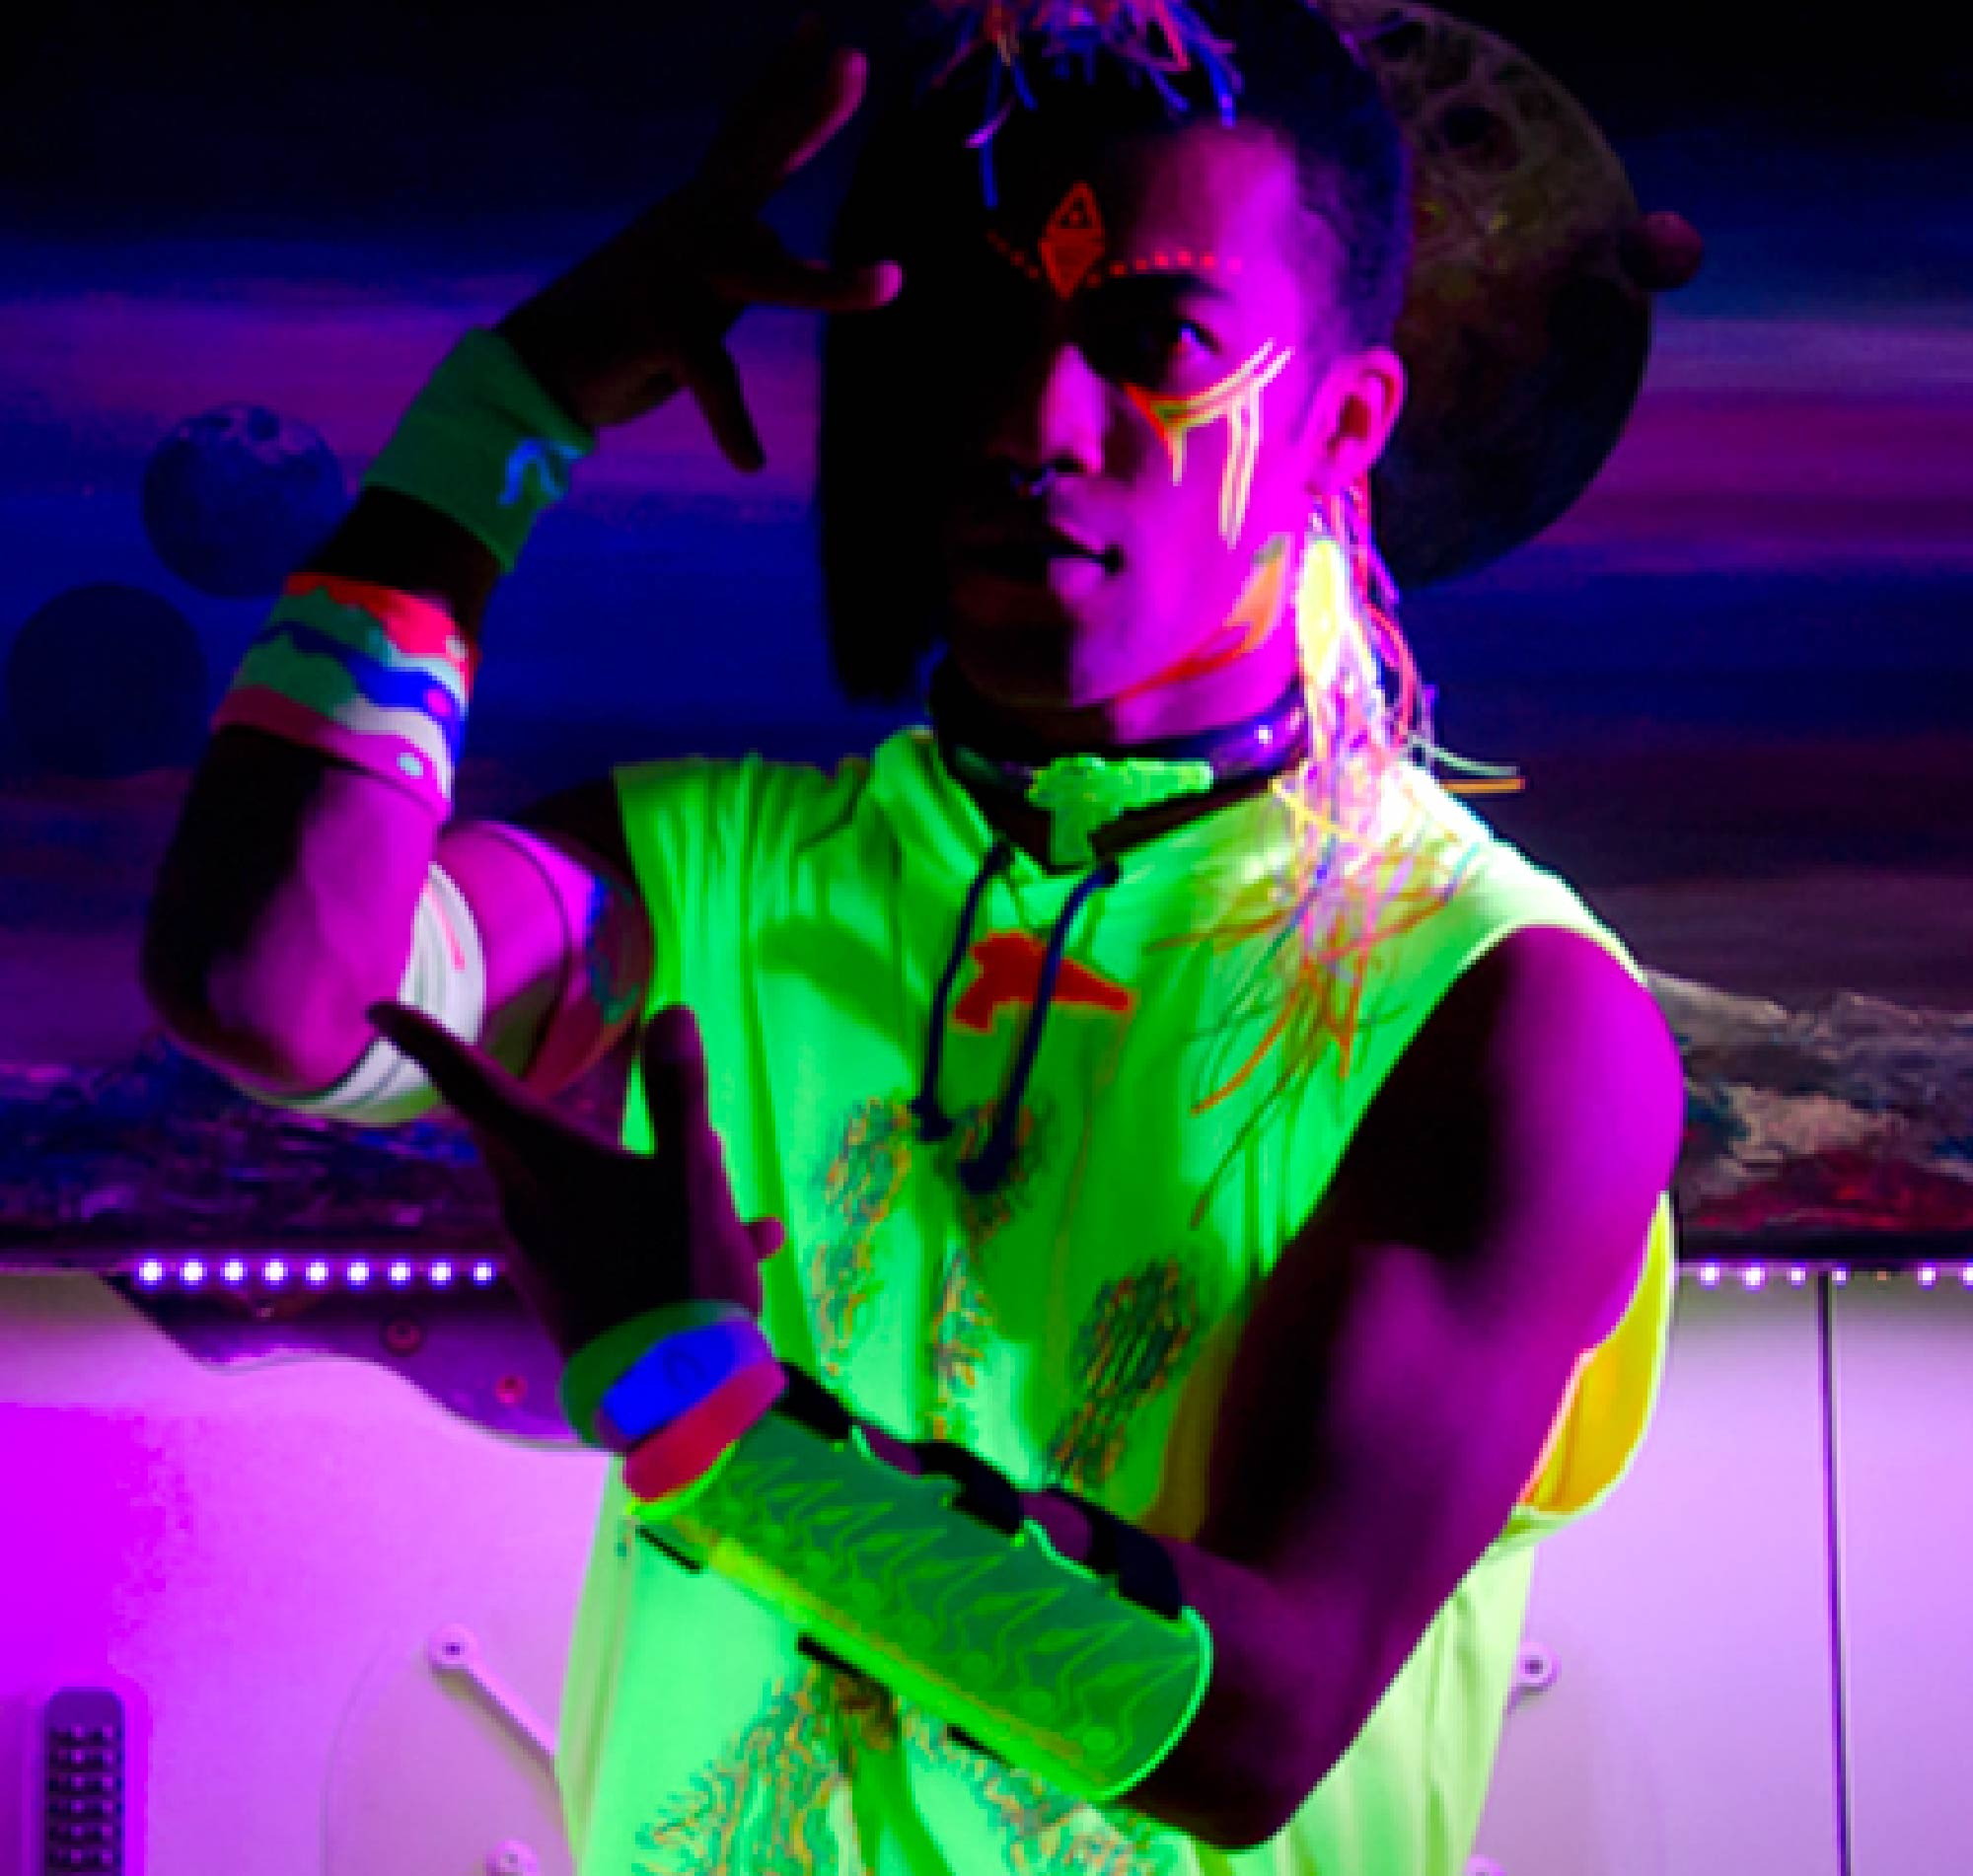 Makeup for London music video. Man with fluorescent clothes and paint poses under a blacklight.